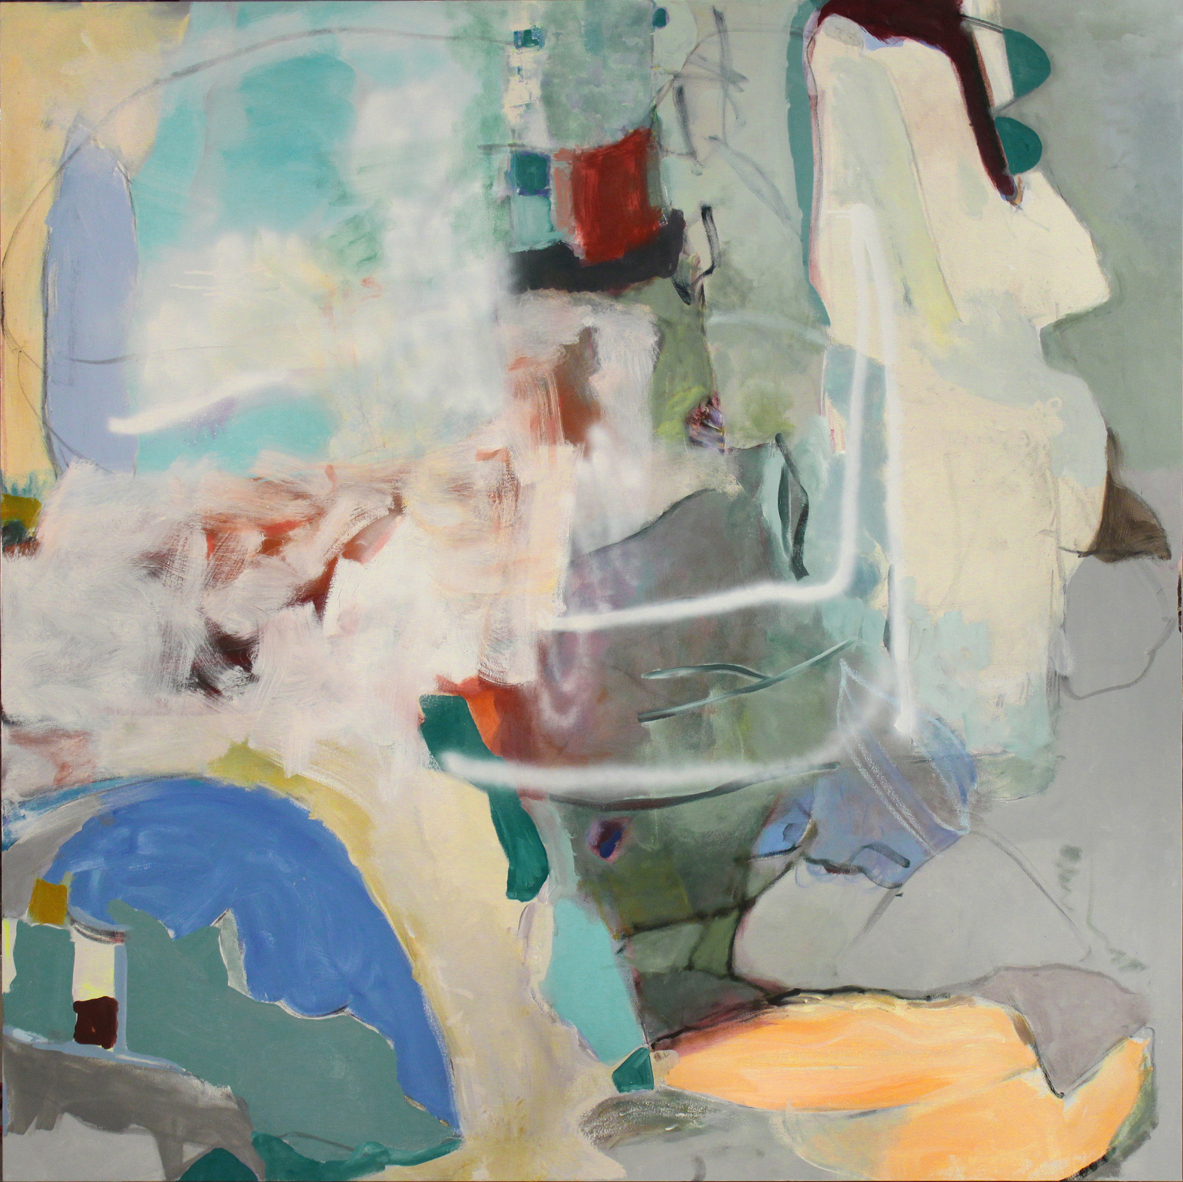 Rampart, 2015 oil and acrylic on canvas 66 x 66 inches